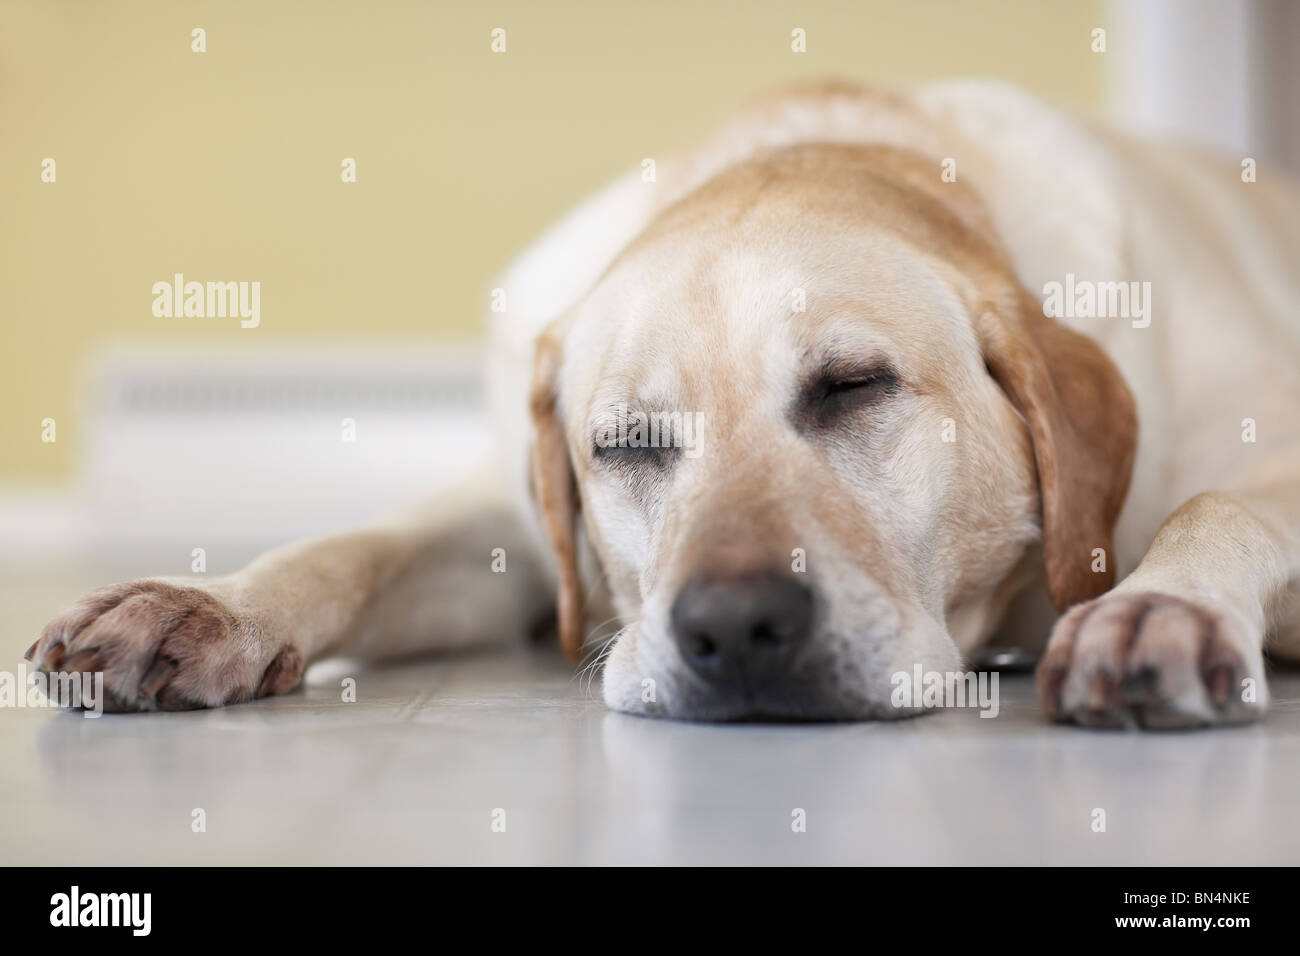 Close-up of Yellow Labrador Retriever dog sleeping on floor.  Winnipeg, Manitoba, Canada. - Stock Image